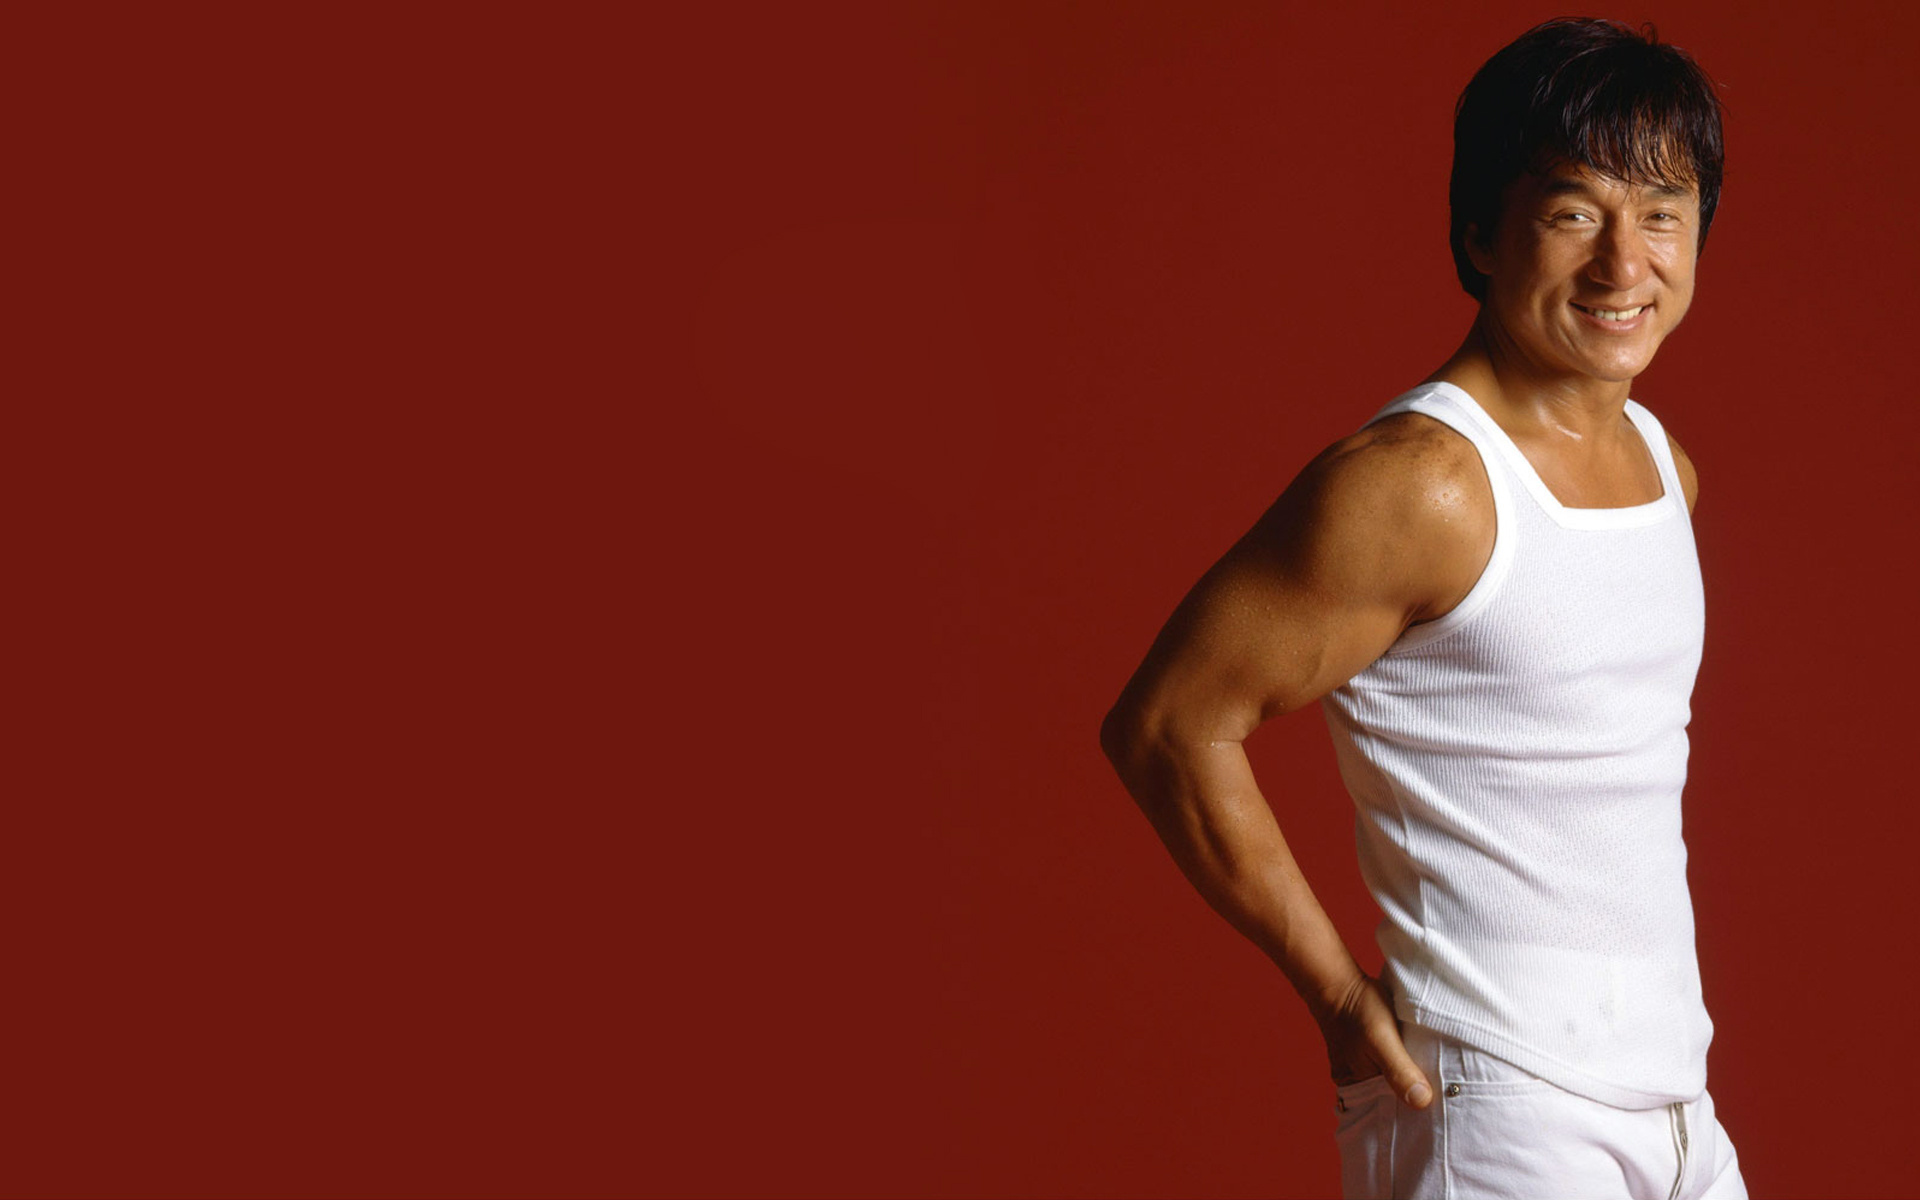 2048x1152 Jackie Chan Wallpaper 2048x1152 Resolution